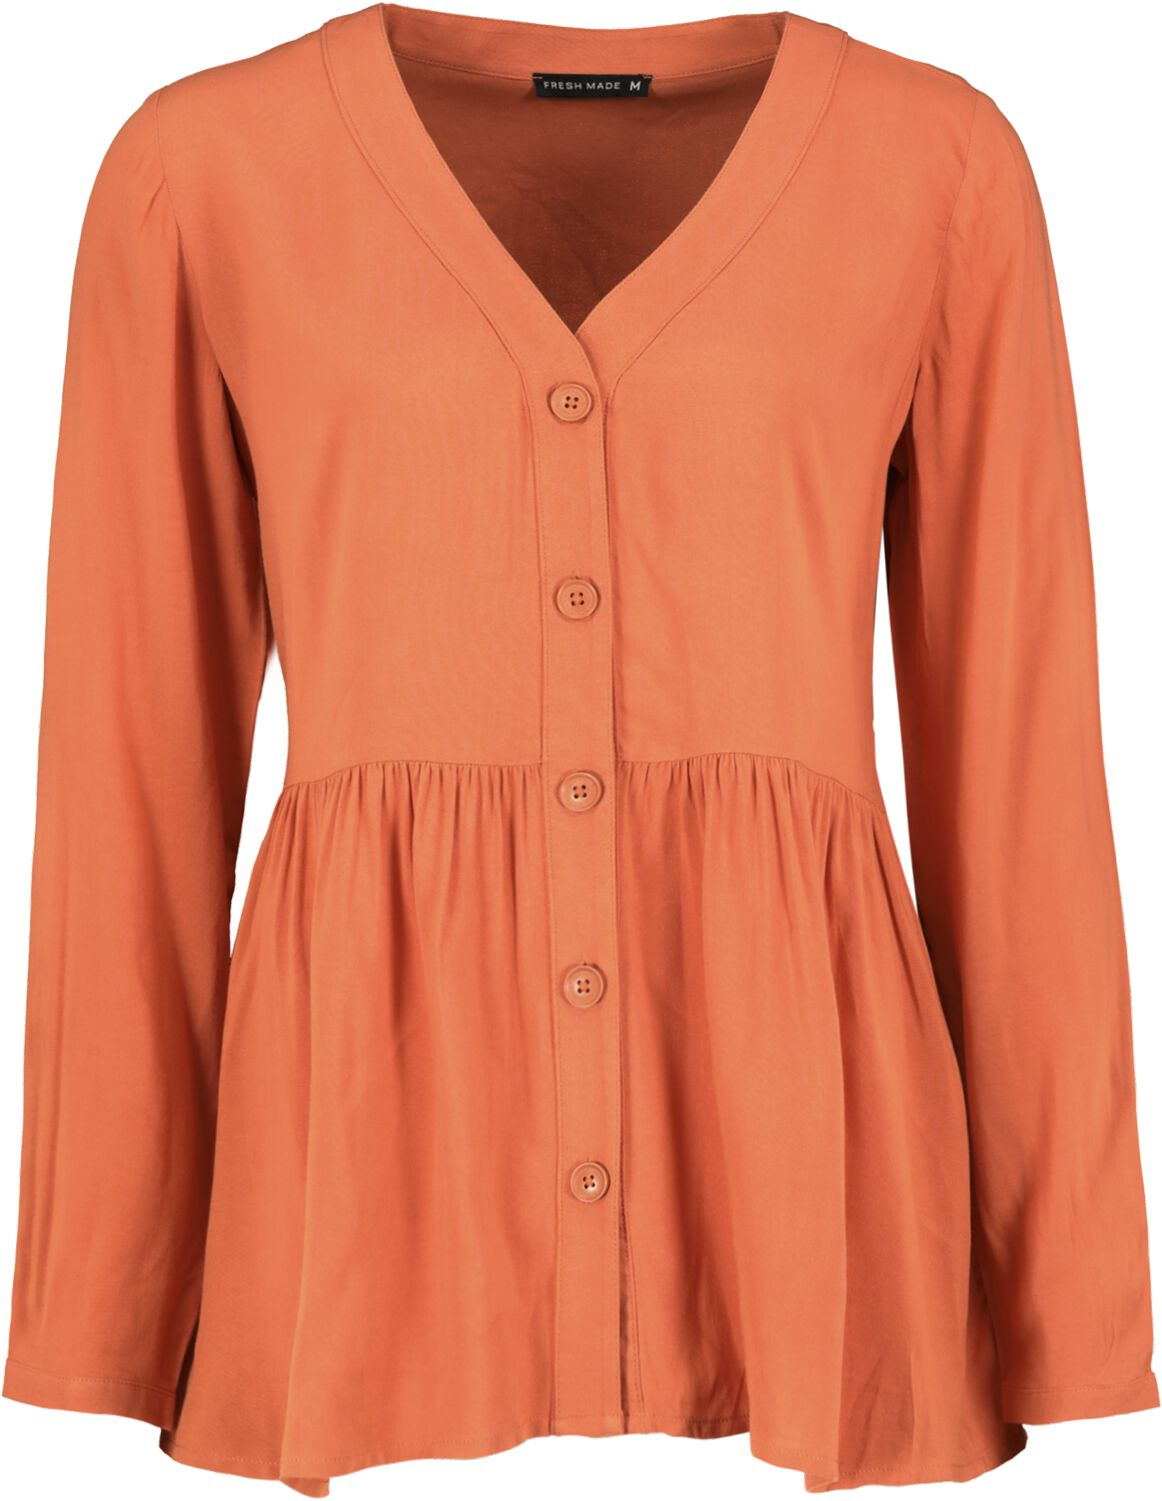 Image of Fresh Made Ladies Blouse Bluse rot